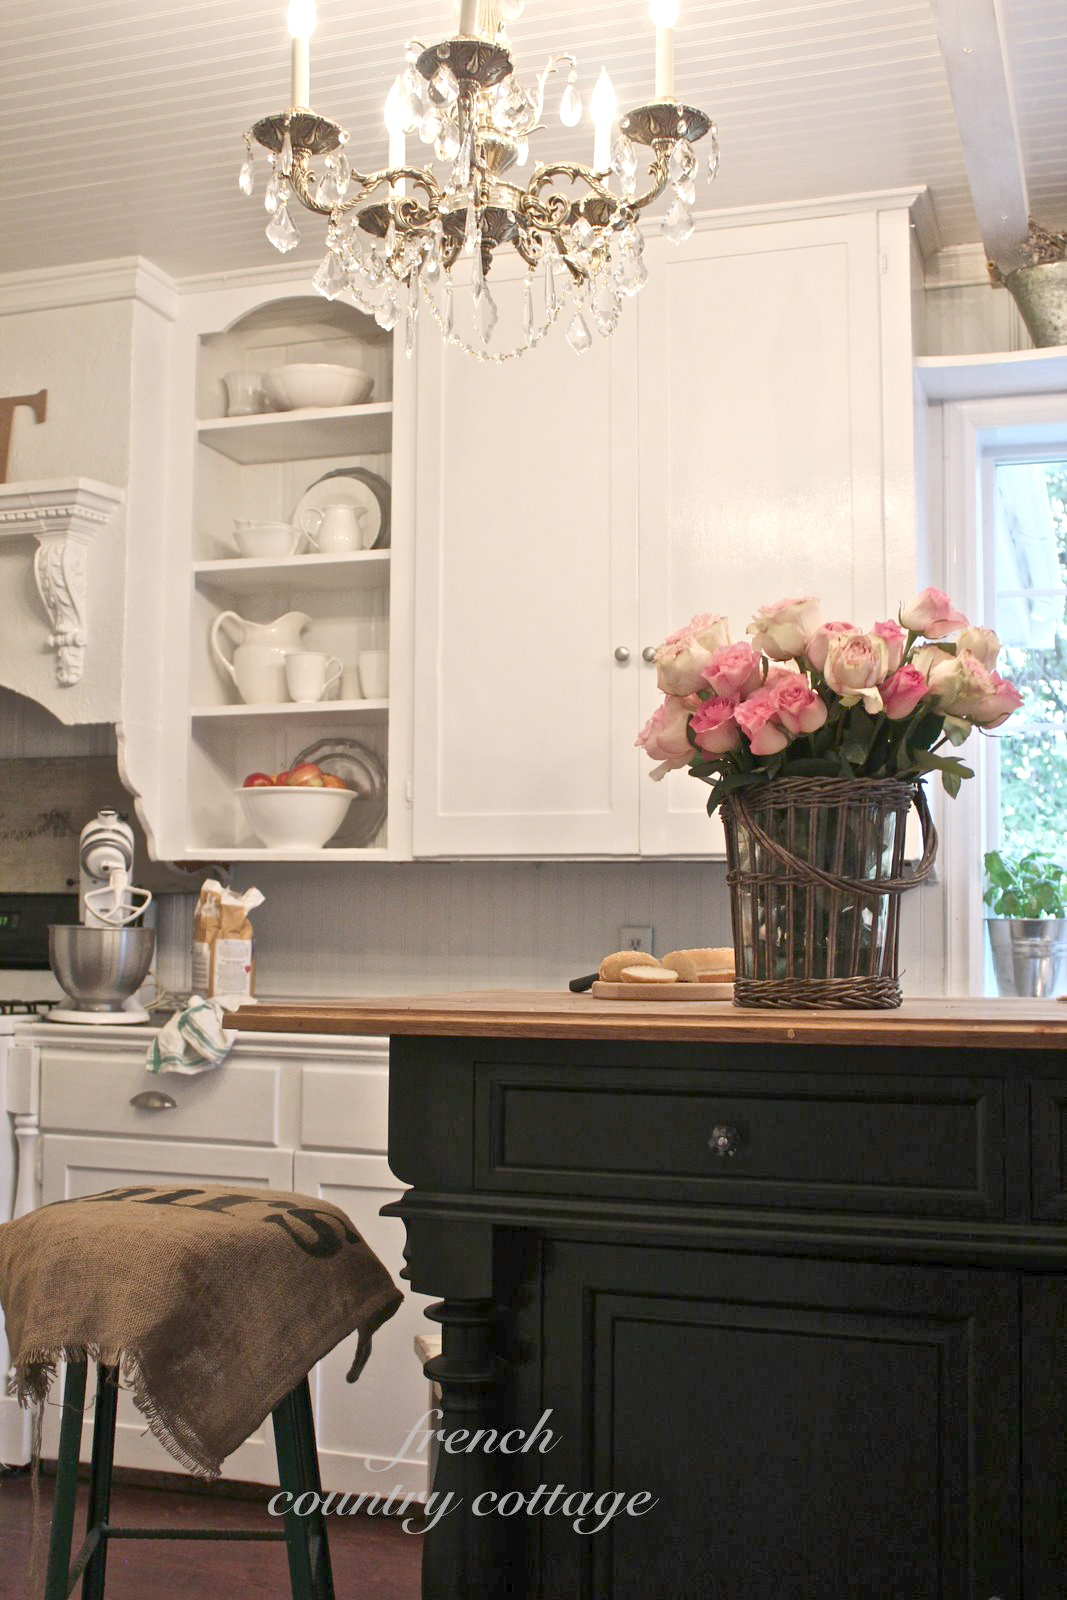 Creating Open Shelves In The Kitchen French Country Cottage